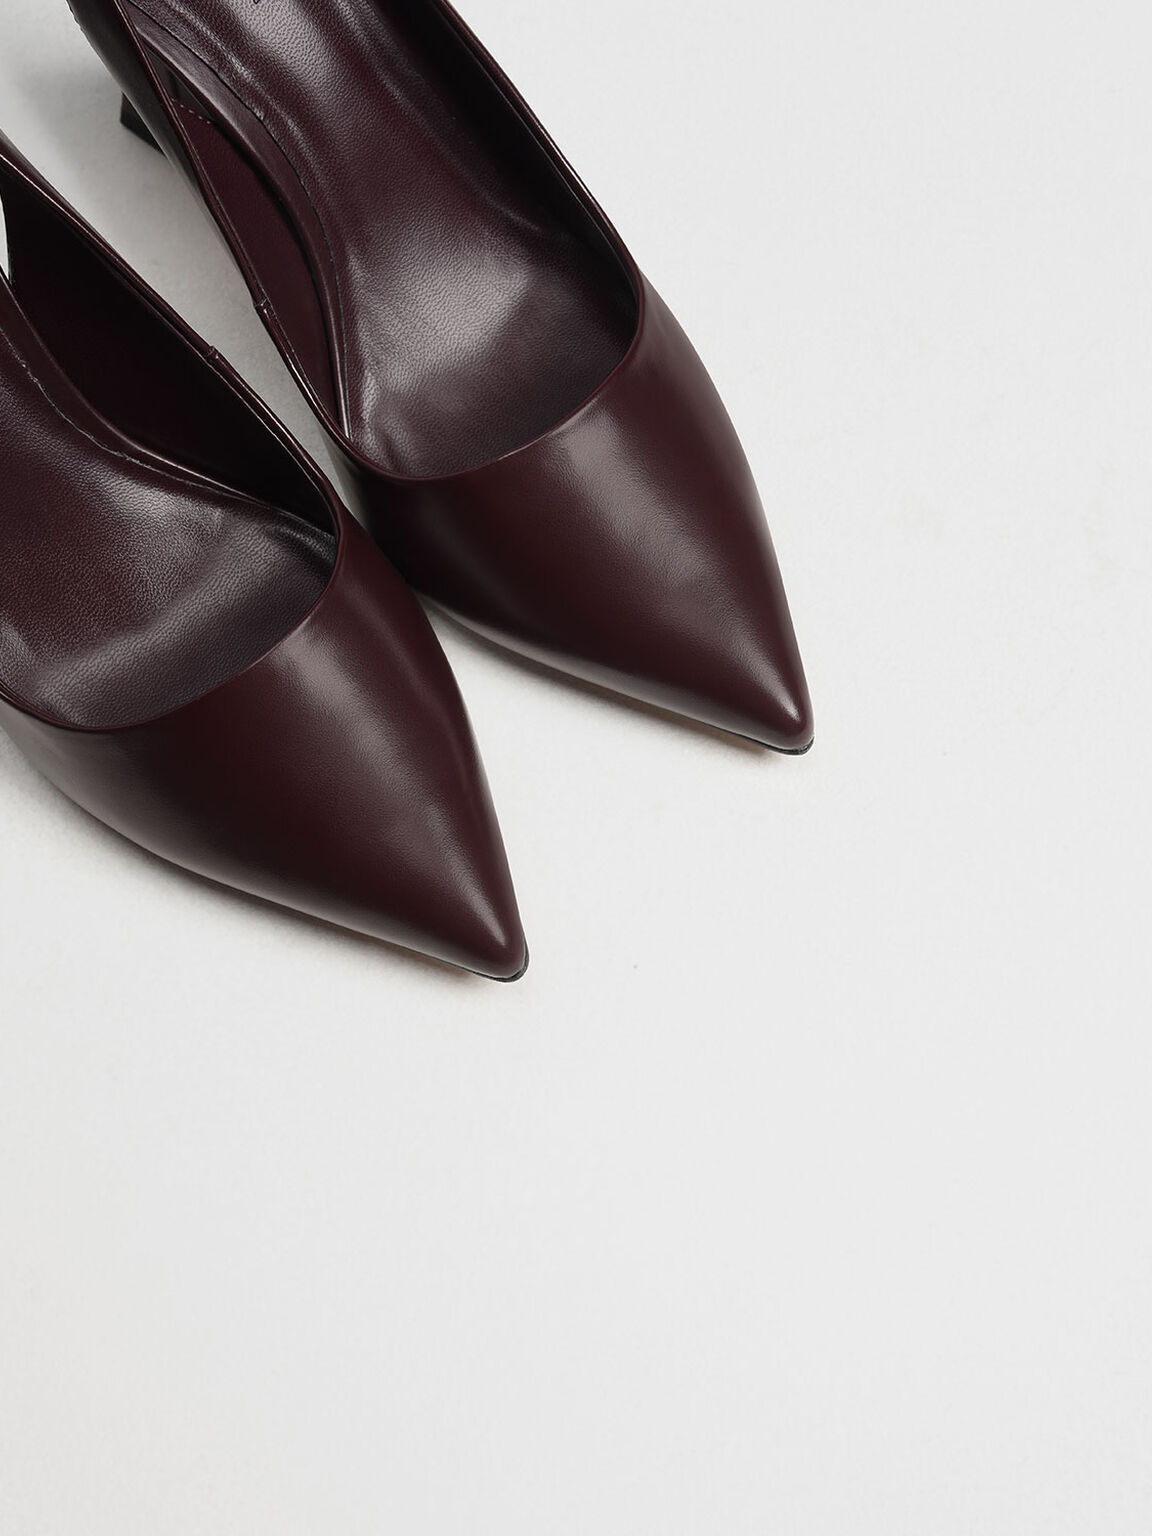 Sculptural Heel Slingback Pumps, Burgundy, hi-res